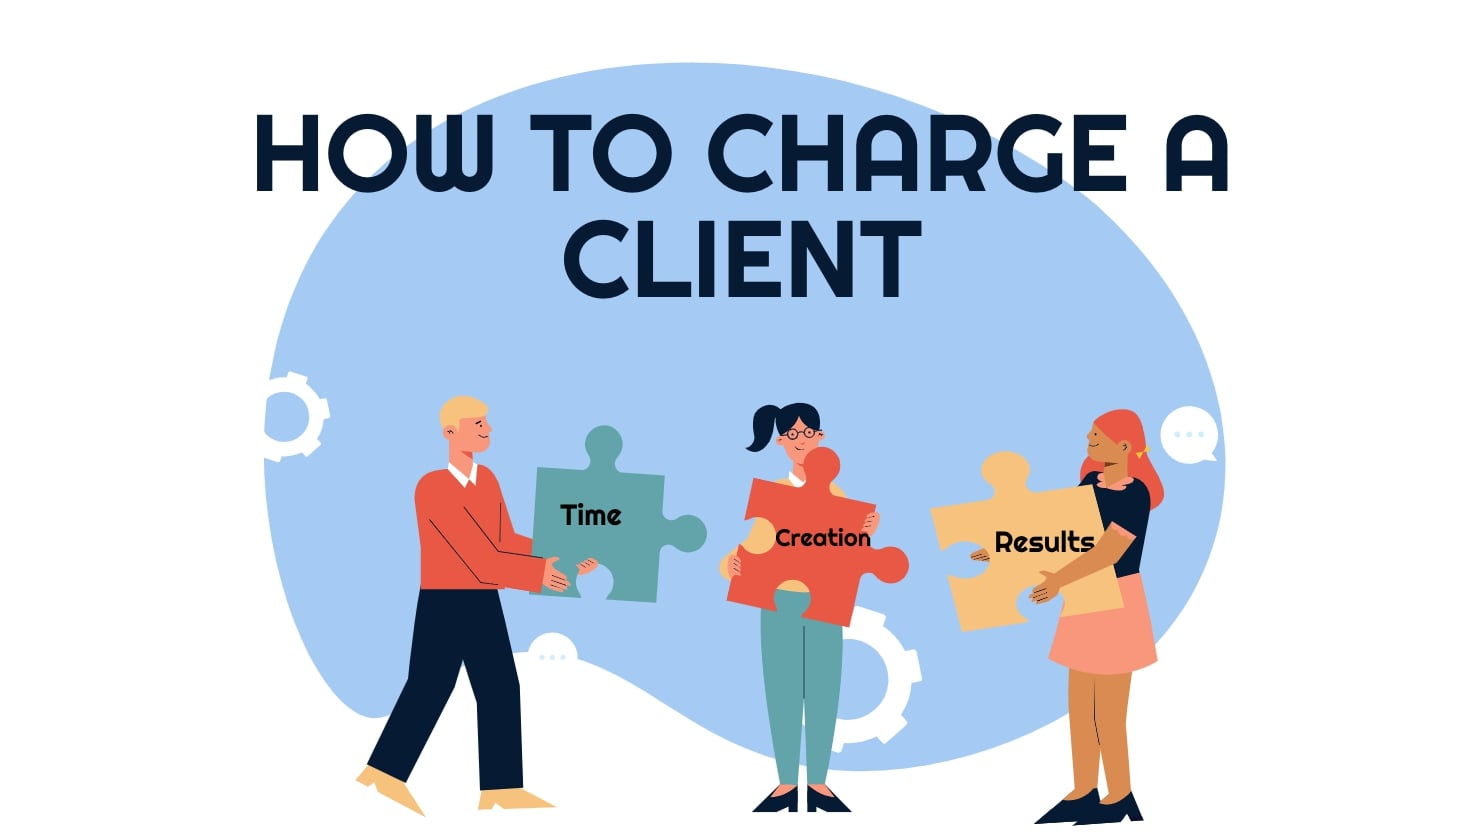 How-To-Charge-A-Client-Kenny-Soto